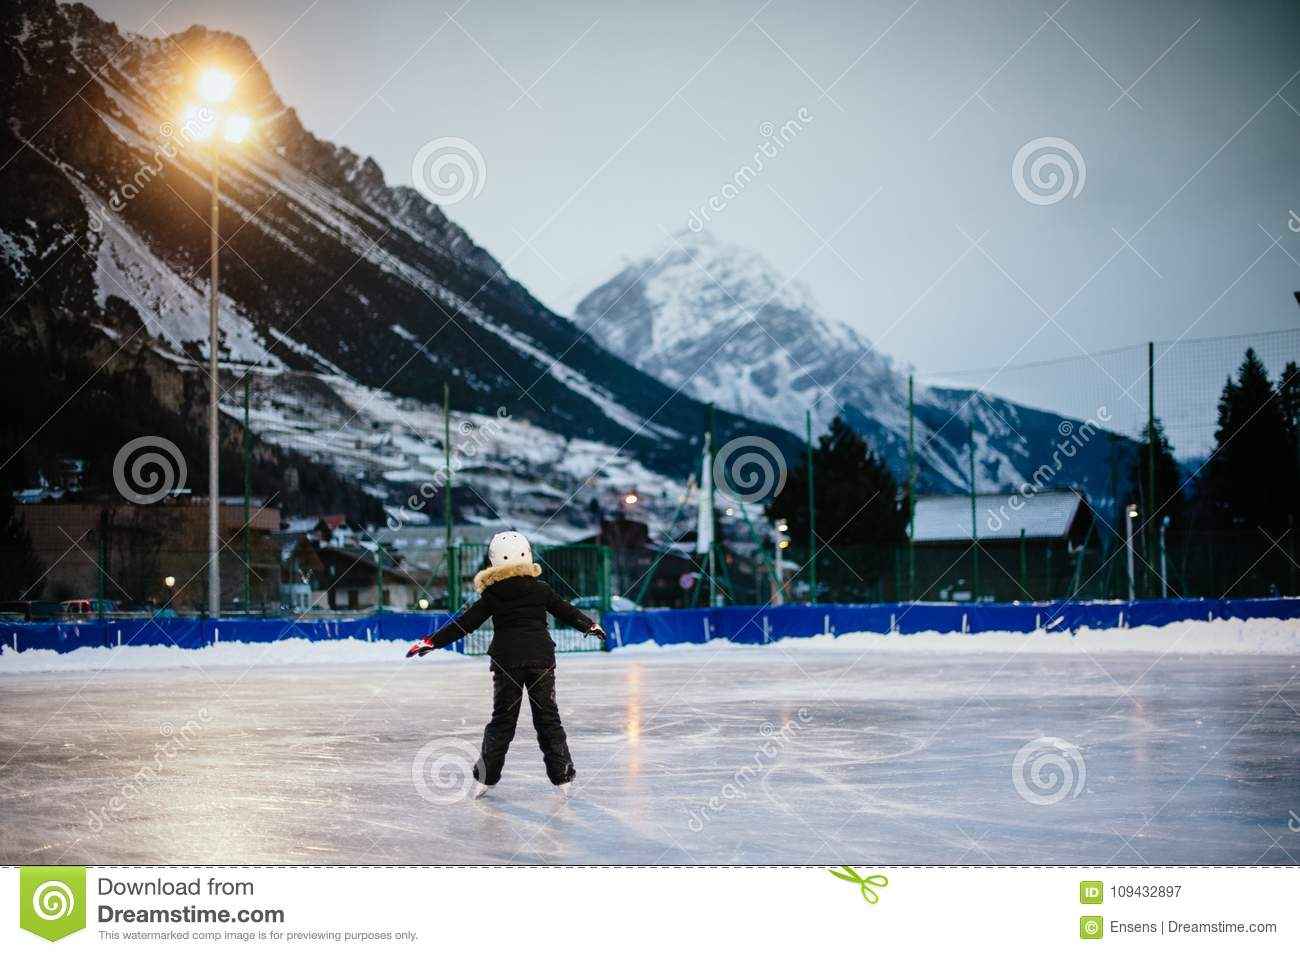 9 year old girl skates on the ice in the evening on an illuminated track